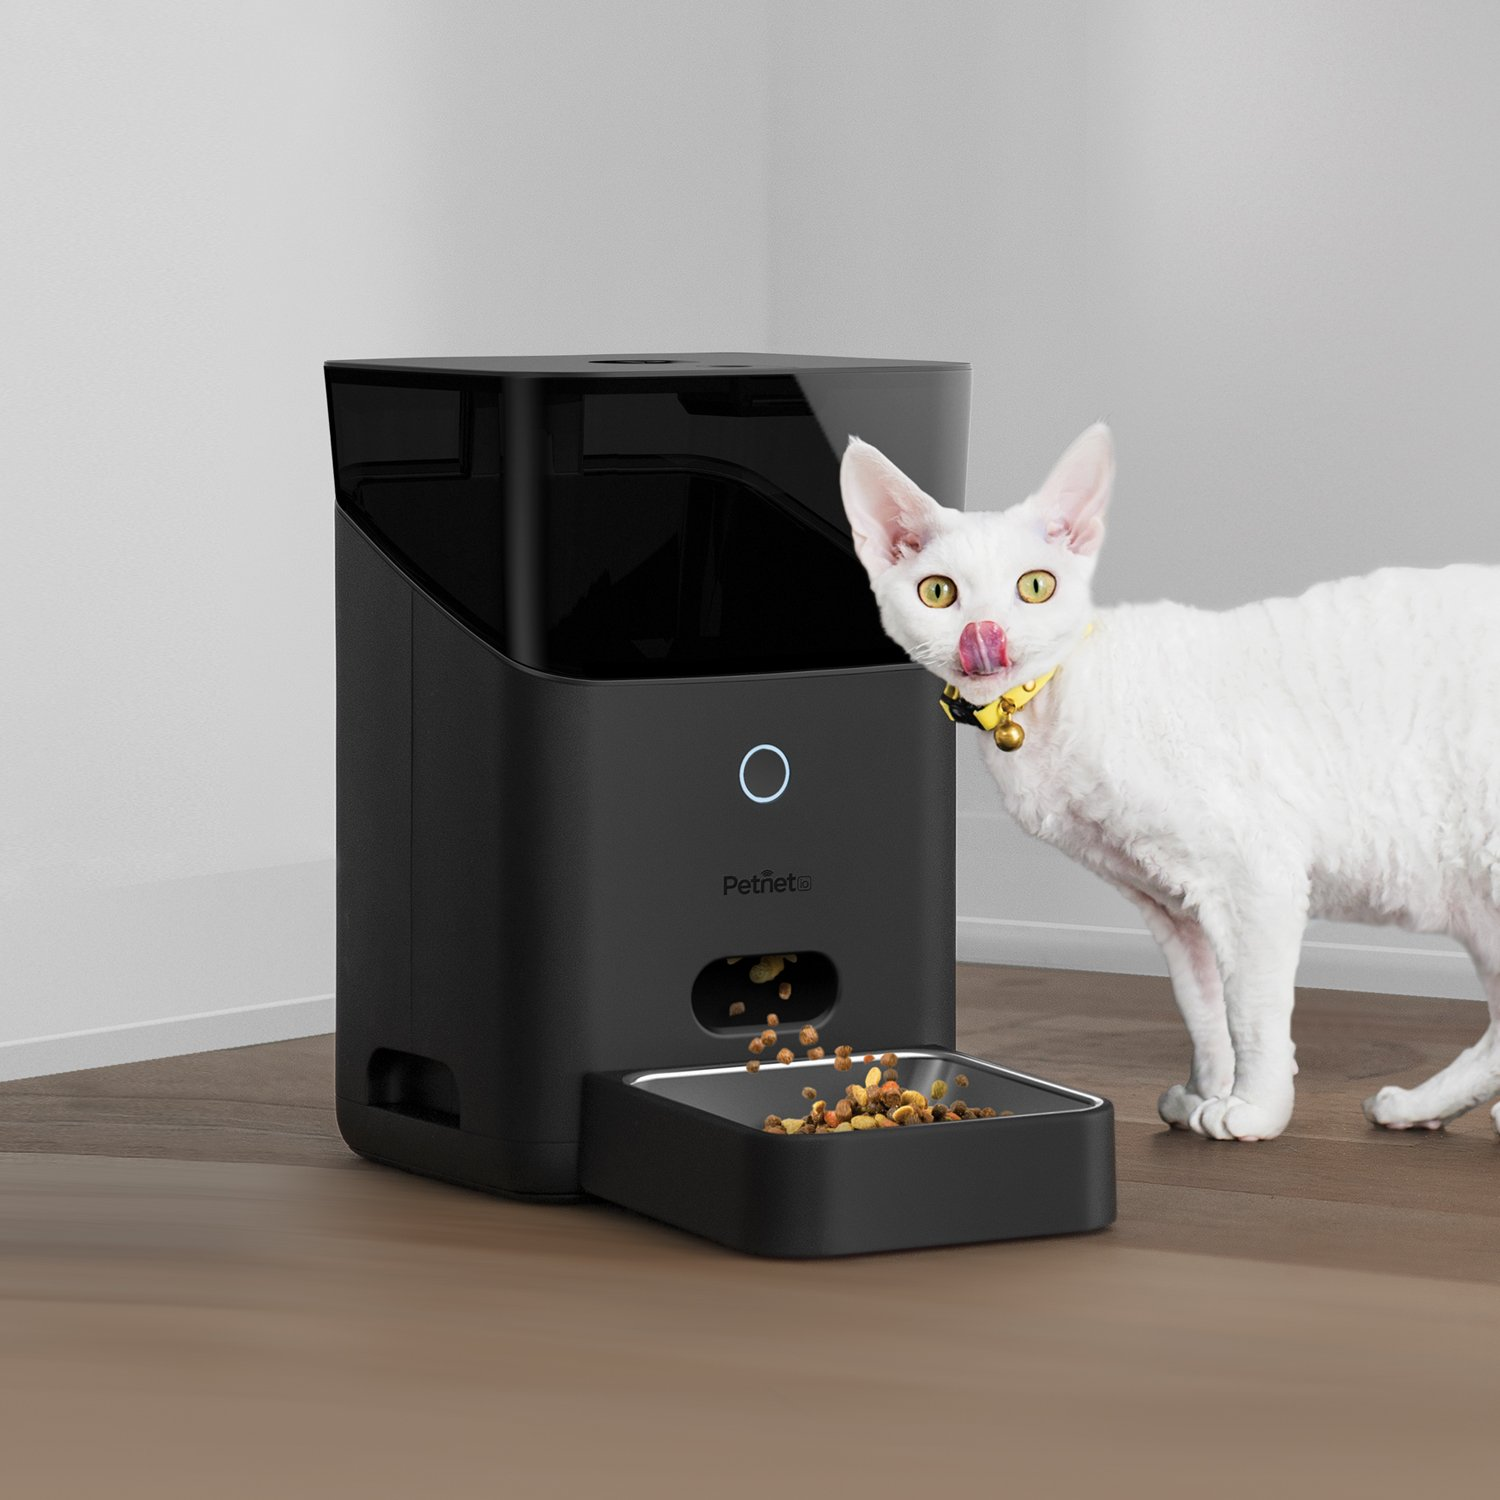 7 Best Smart Automatic Pet Feeder Camera with WiFi for 2019